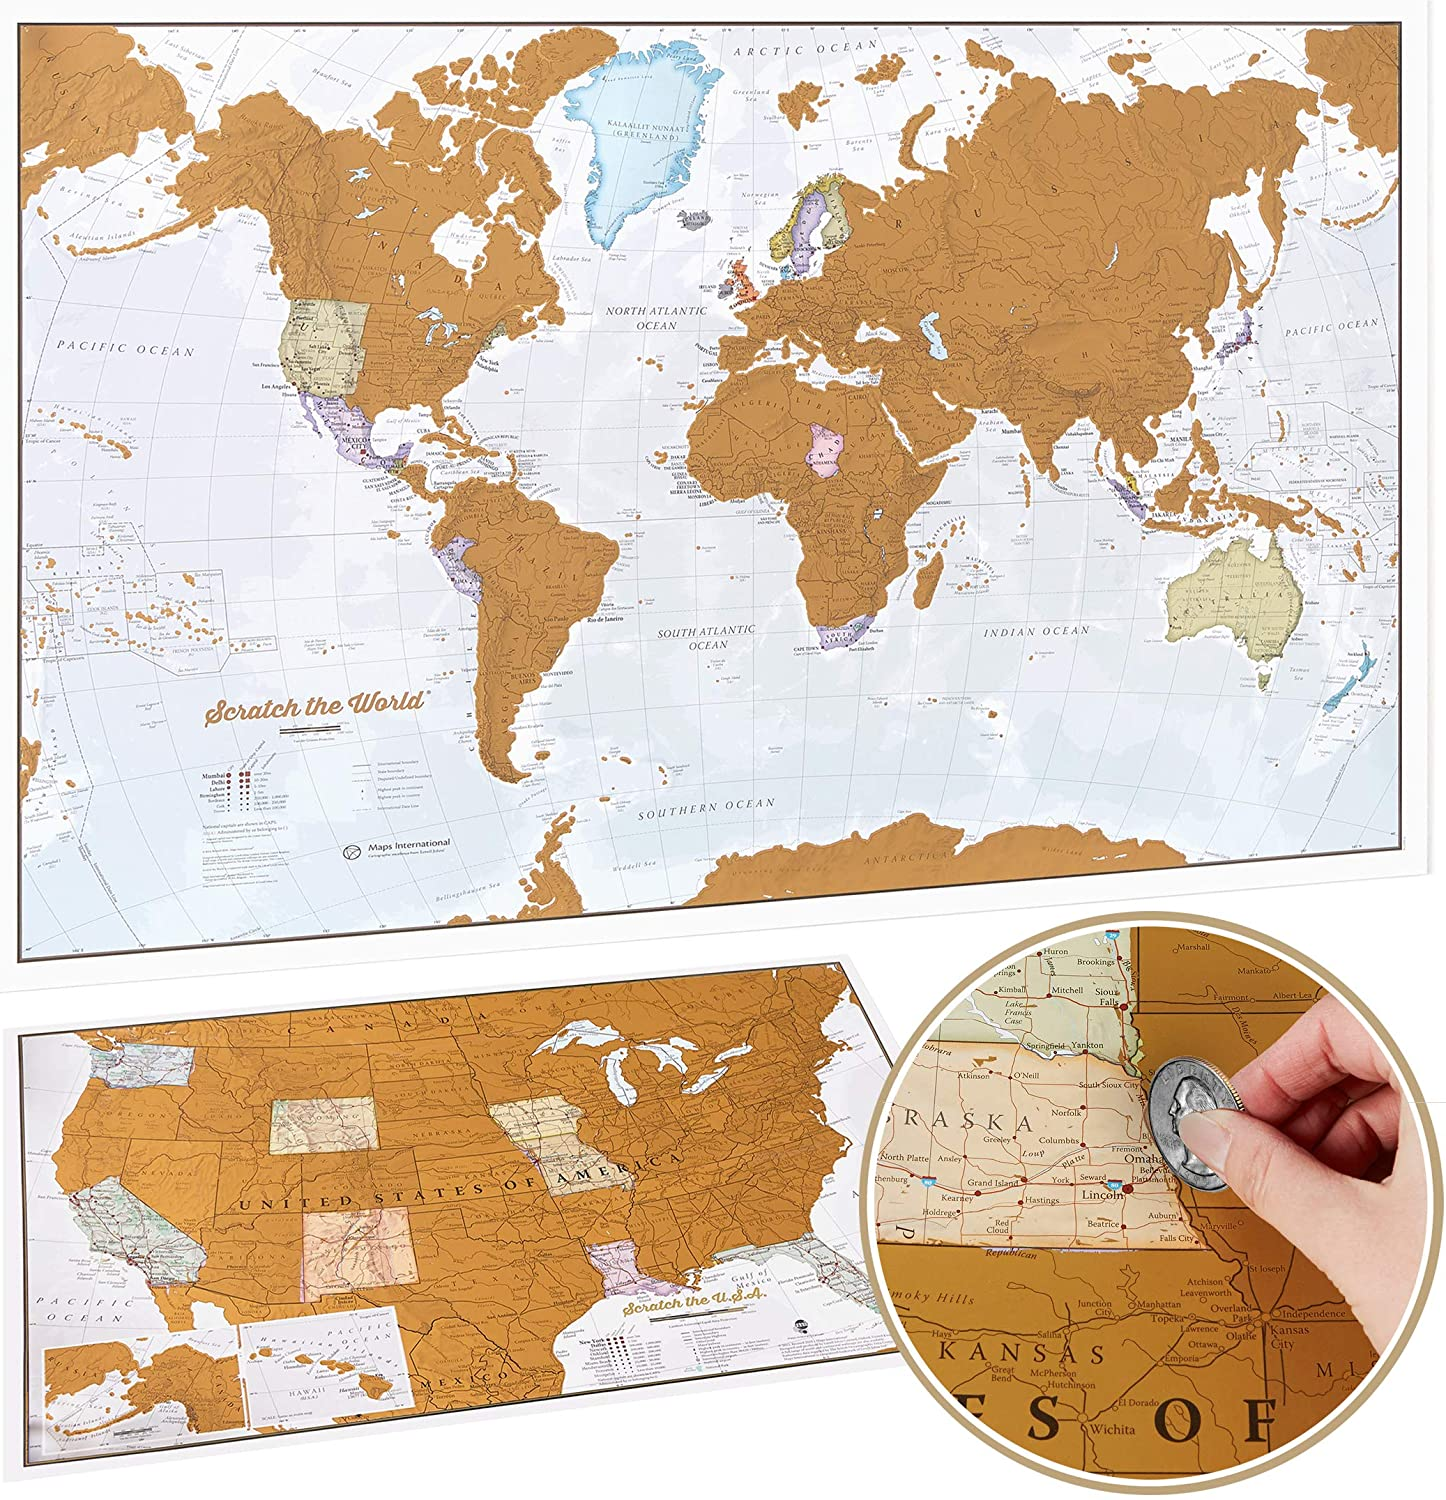 Image of a World Map with Map of the USA below it, and a hand holding a coin.